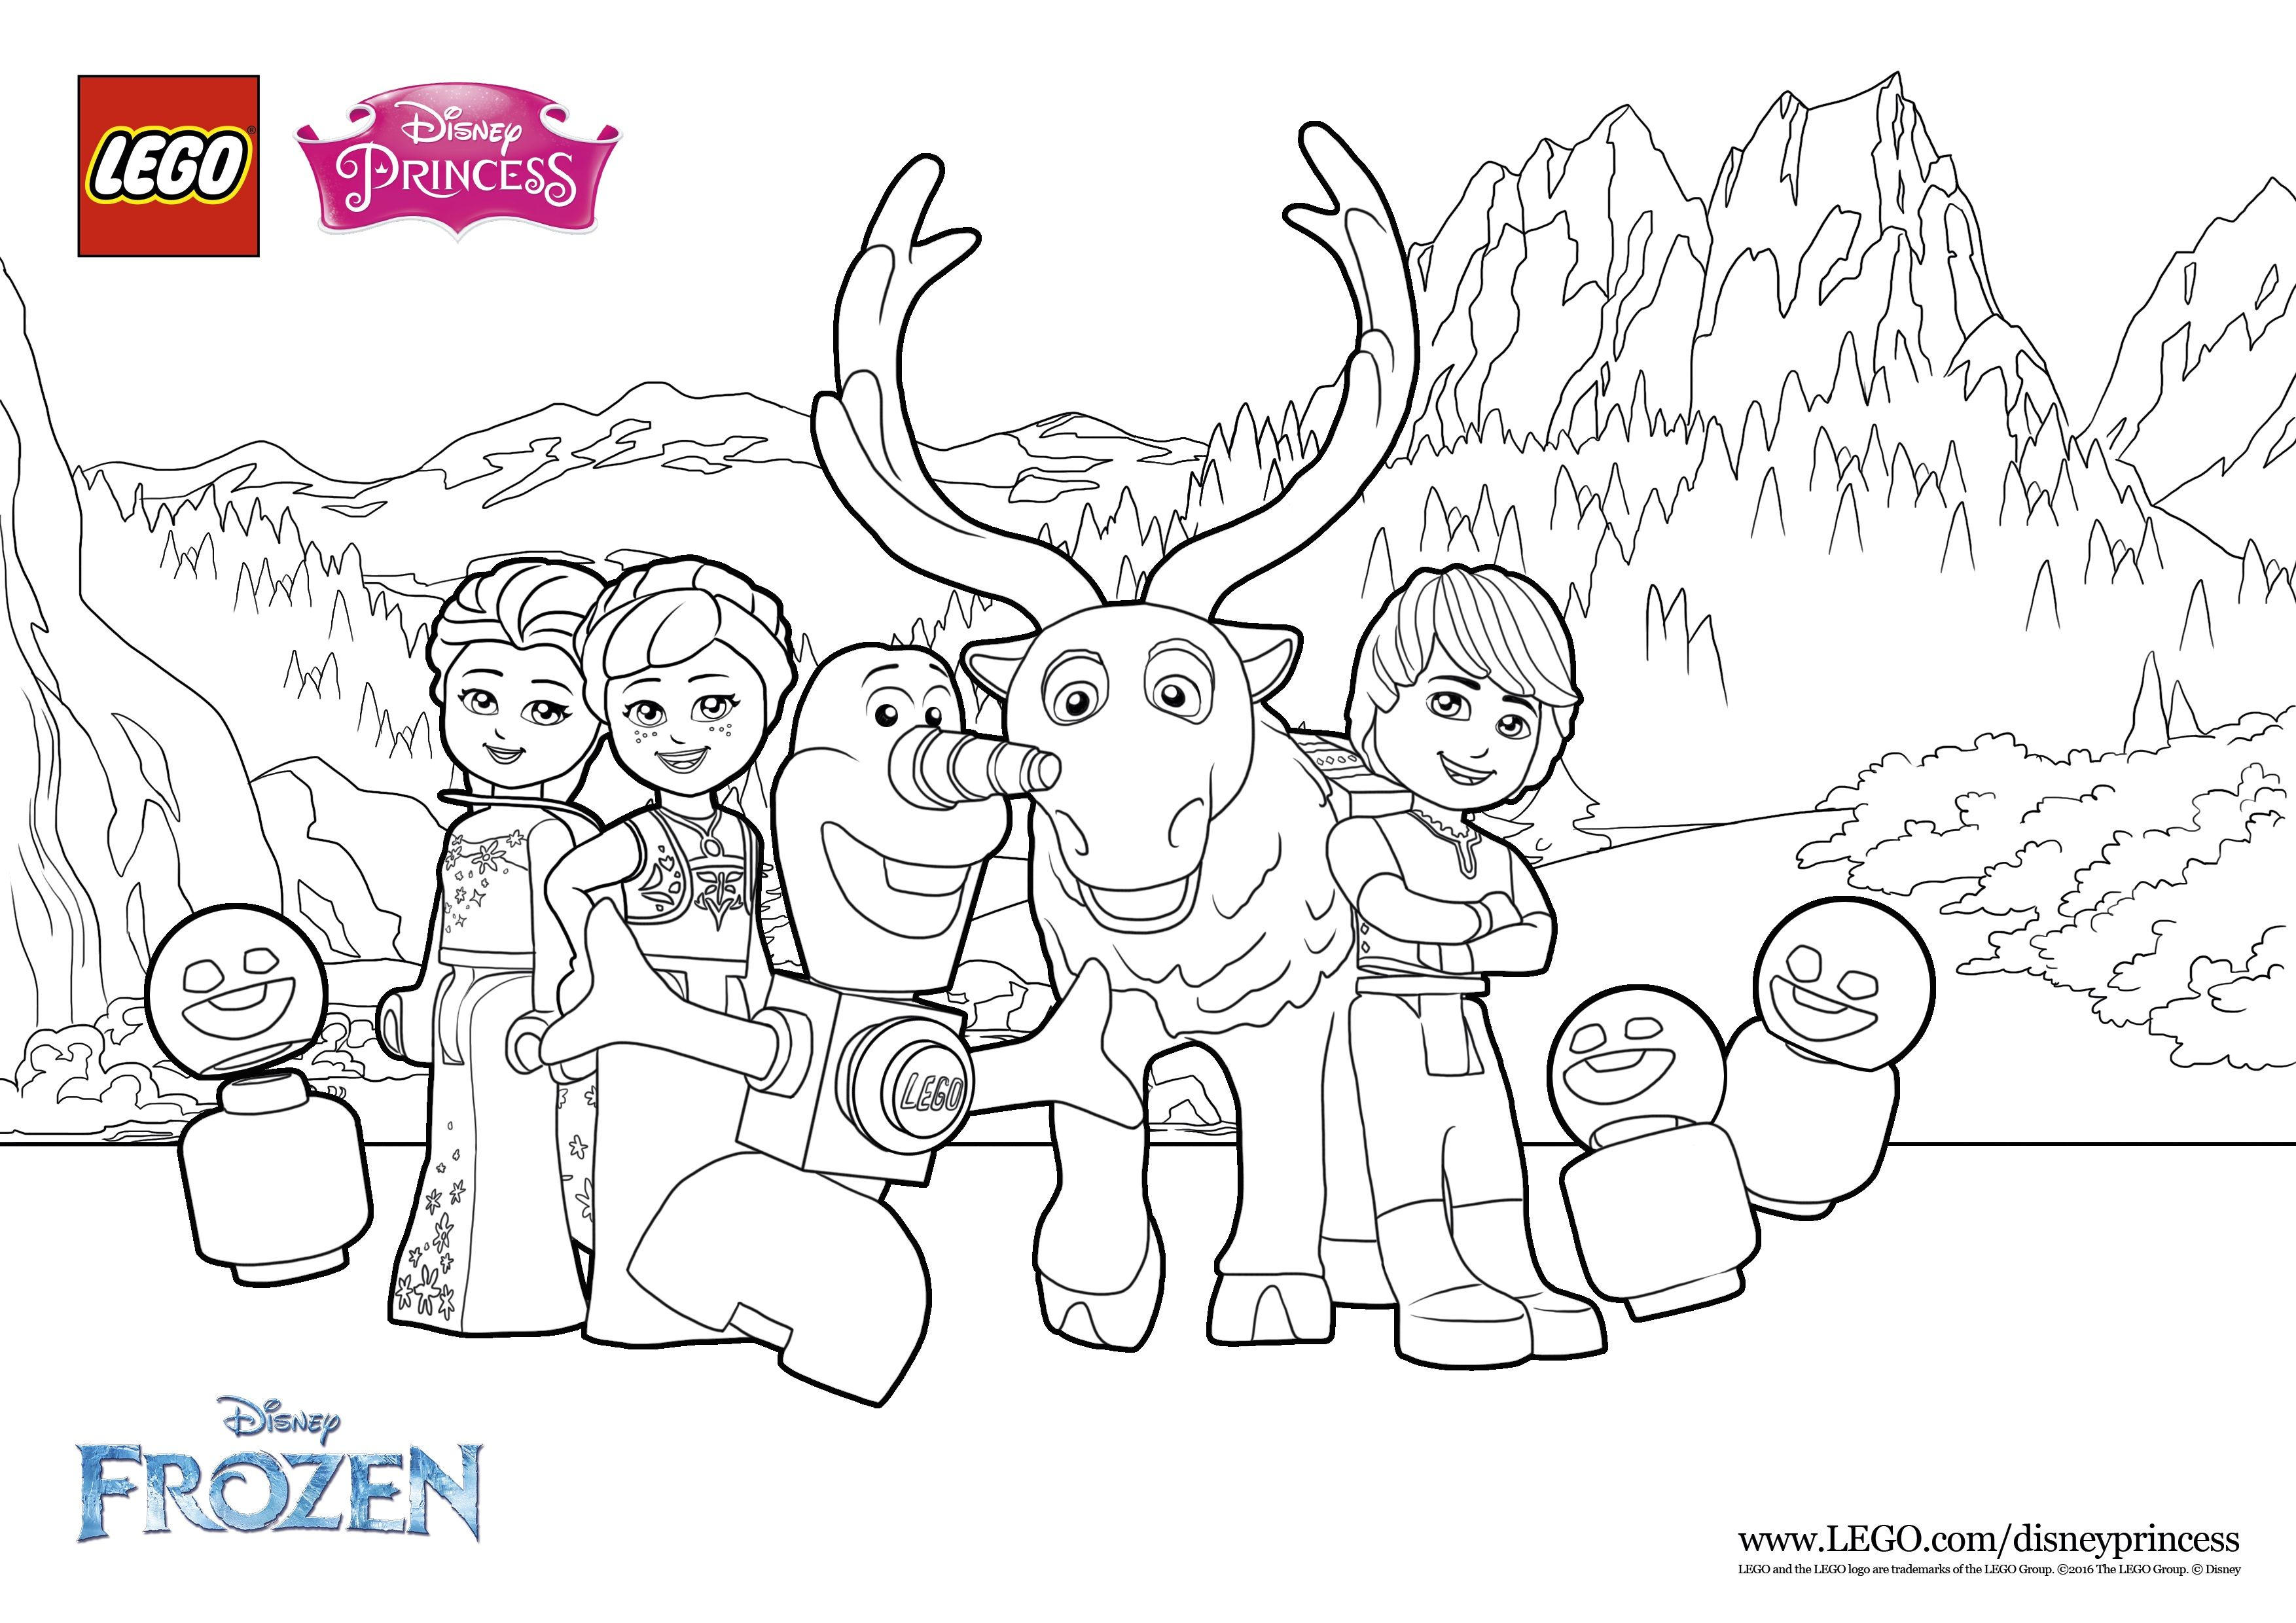 And More Coloring Fun With Olaf His Friends For You To Print